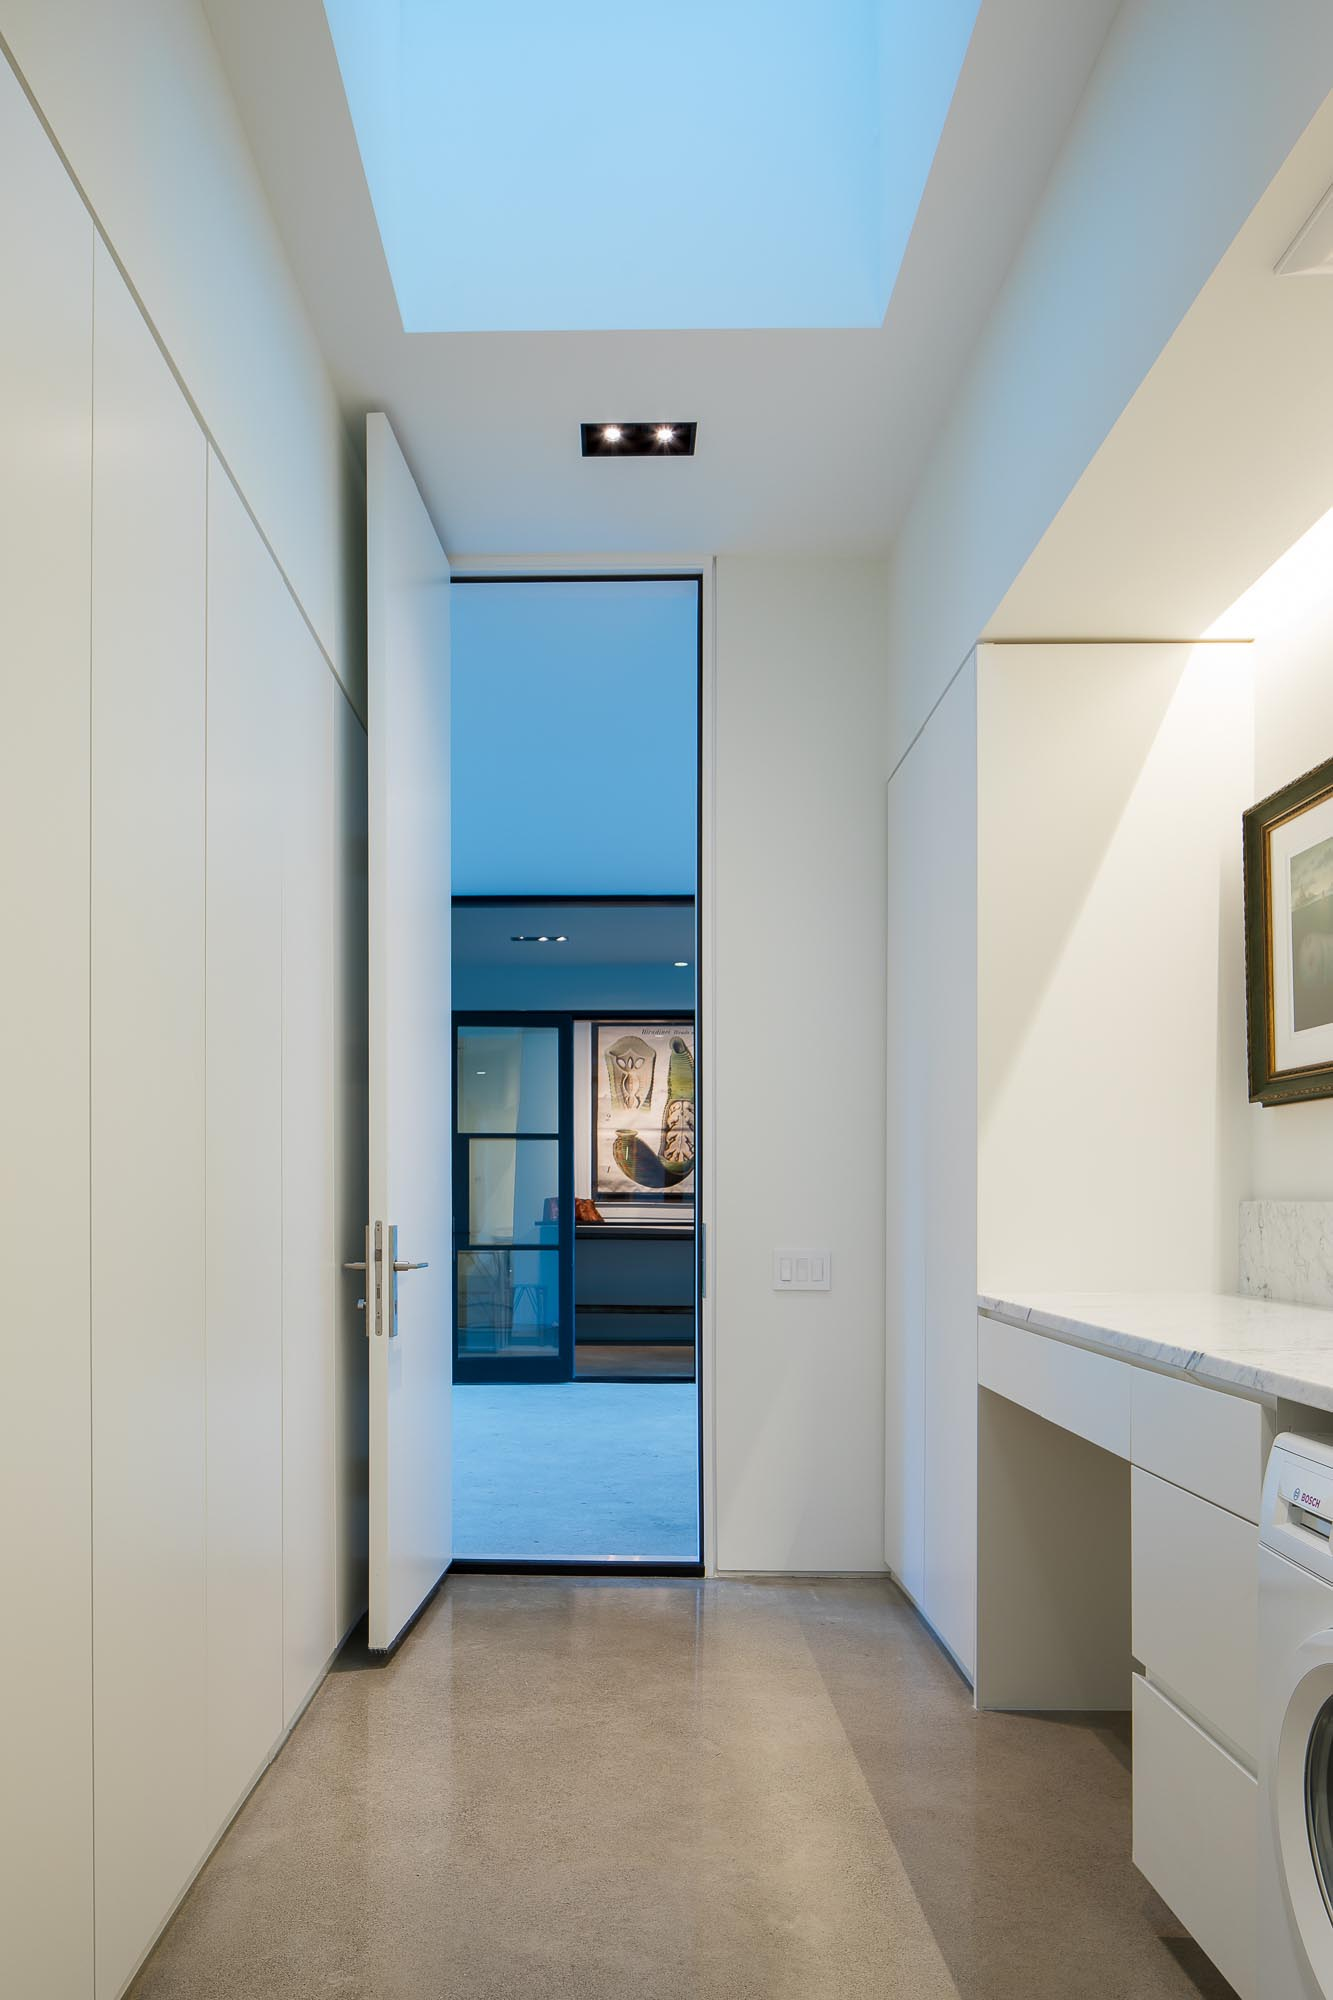 A modern white laundry room with concrete floors.